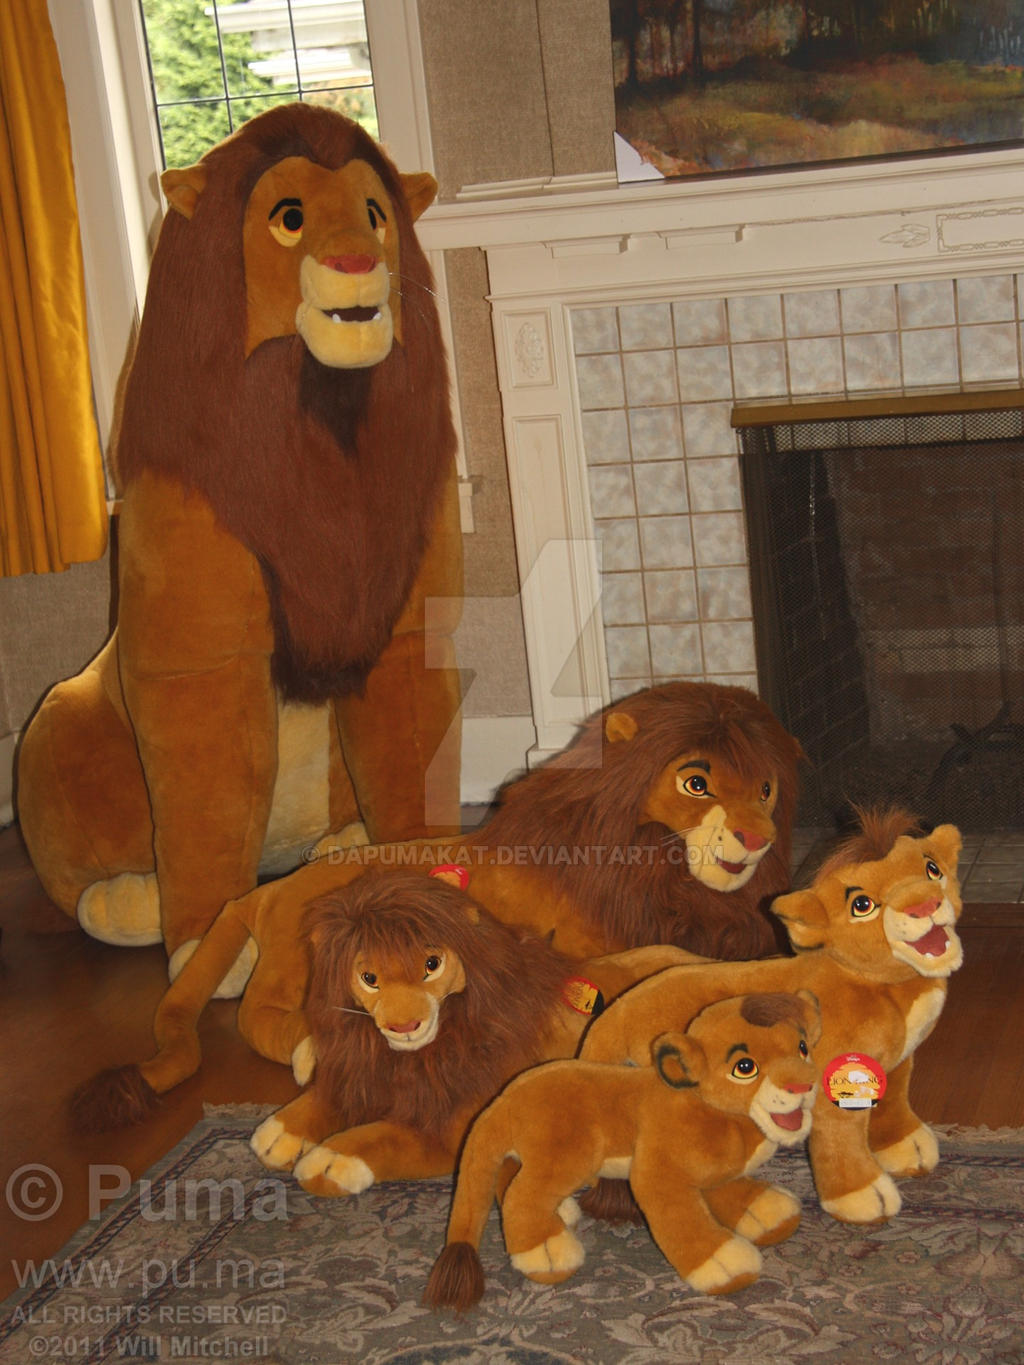 The Lion King - Simba growing up in plush by dapumakat